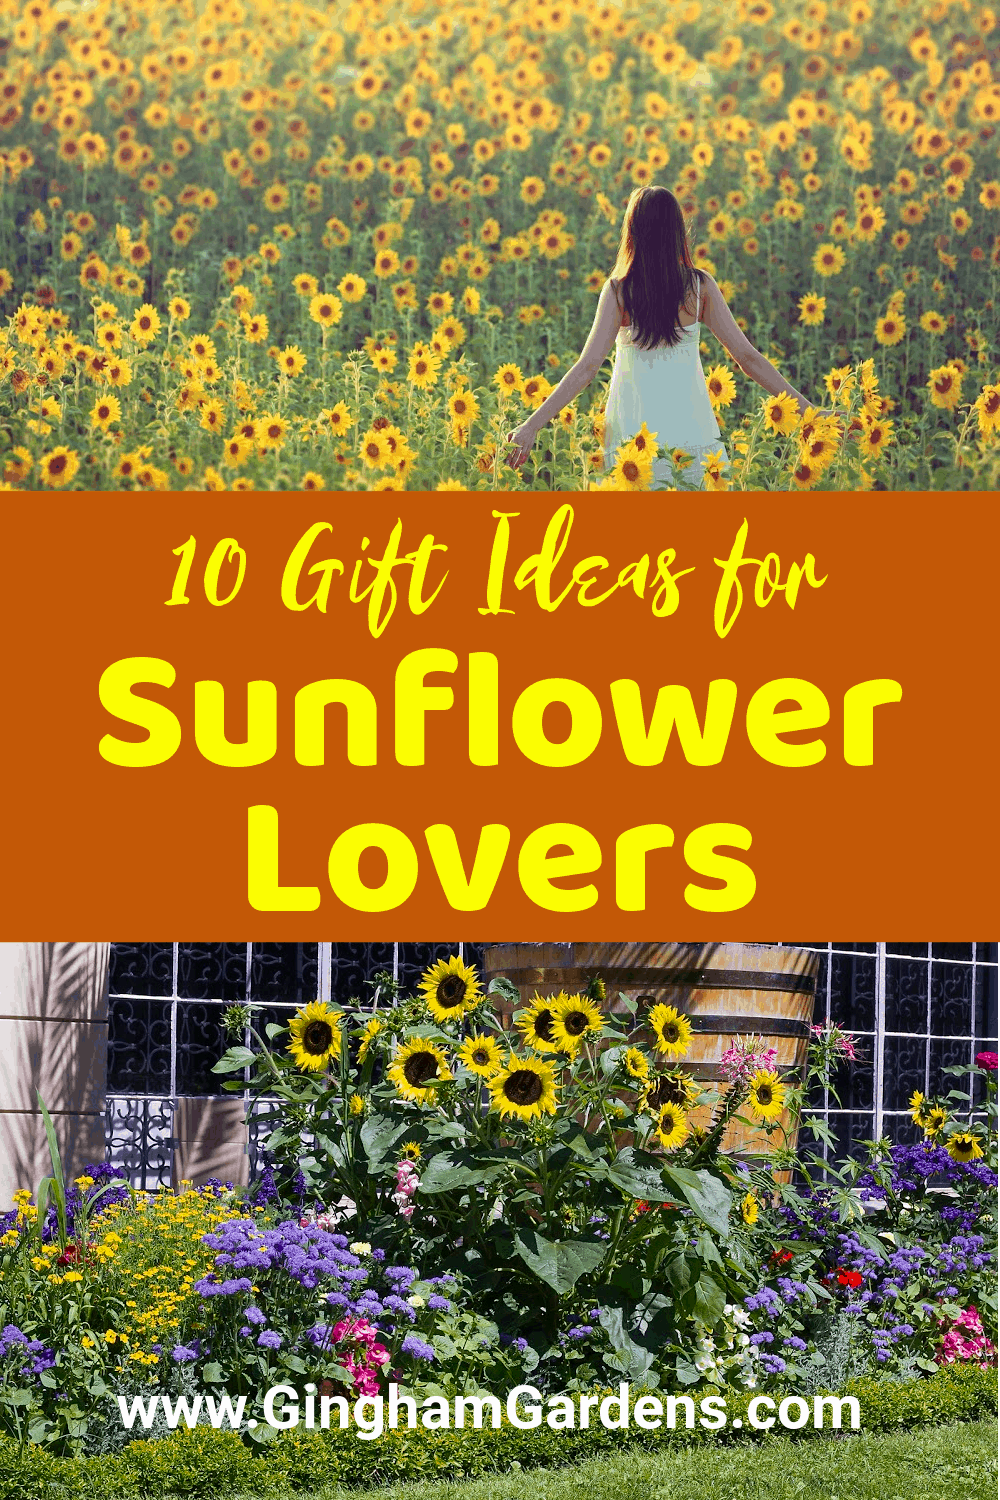 Images of Sunflower Gardens with Text Overlay - 10 Gift Ideas for Sunflower Lovers